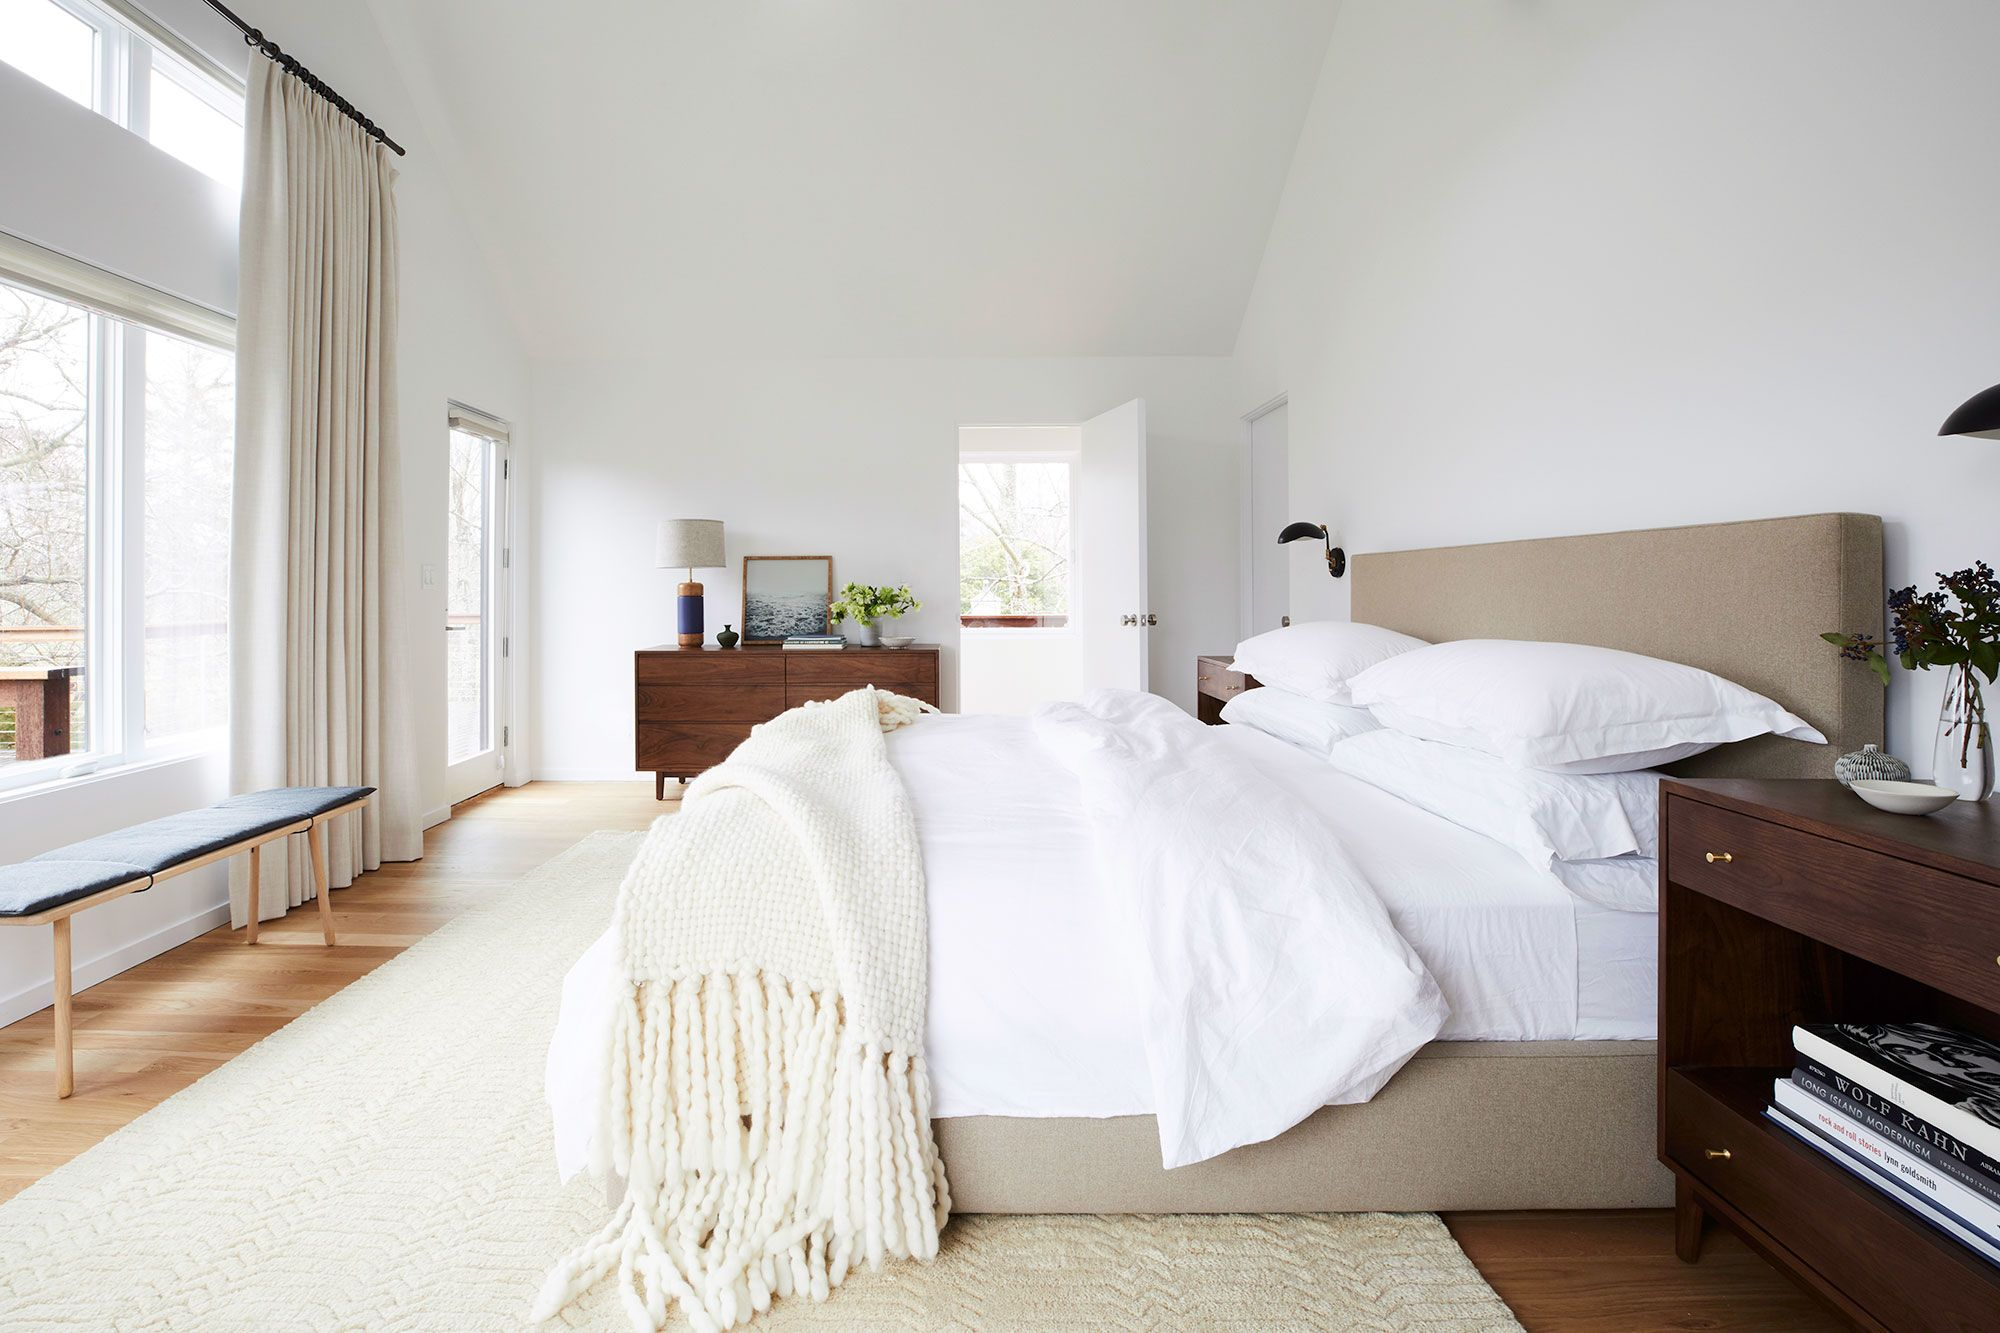 3 Tips for a Cozier Bedroom